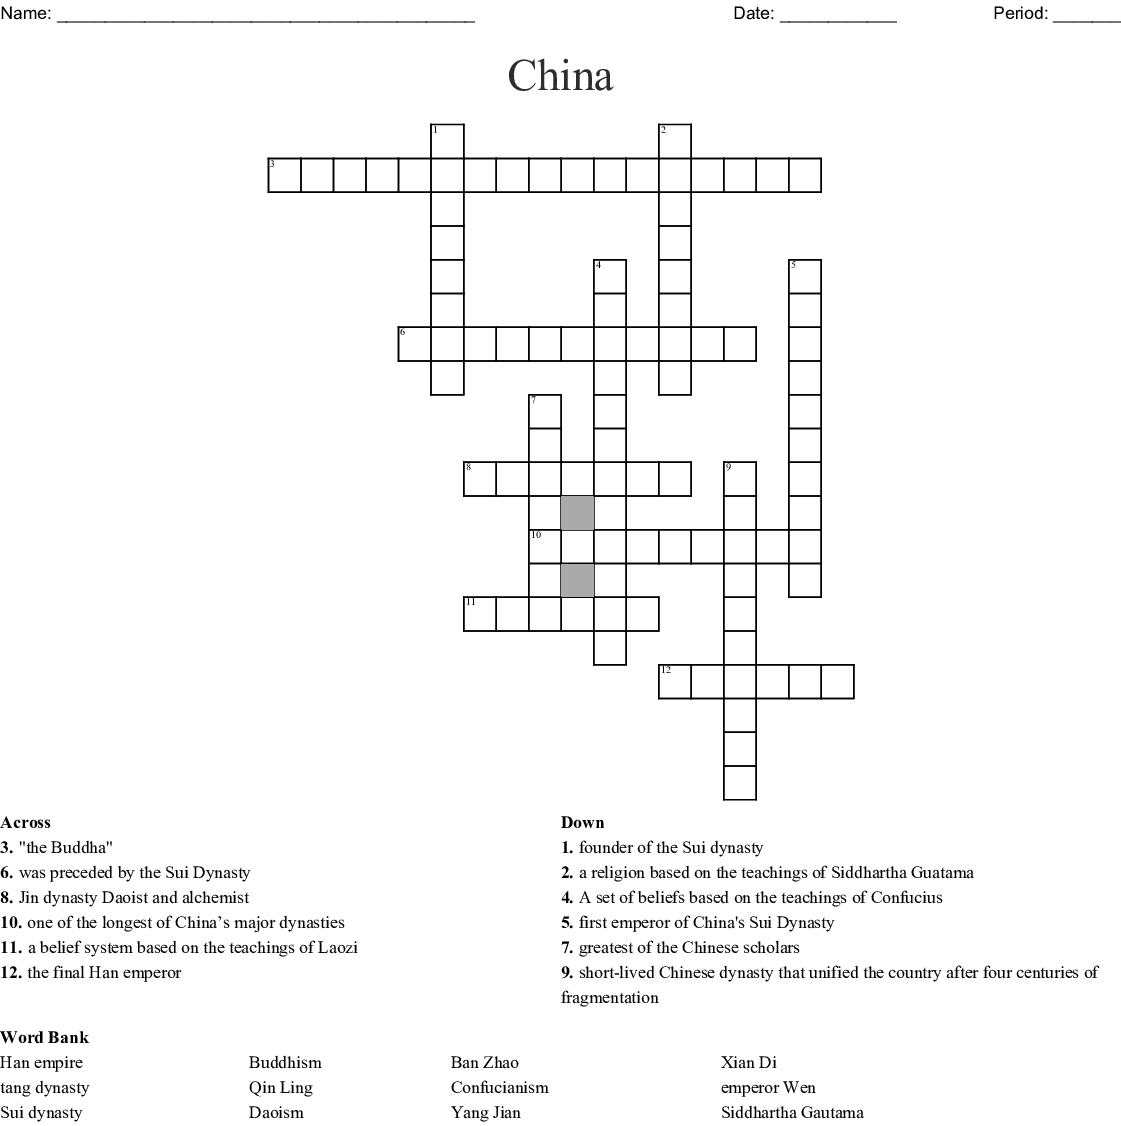 China Dynasties Of Power Worksheet Answers